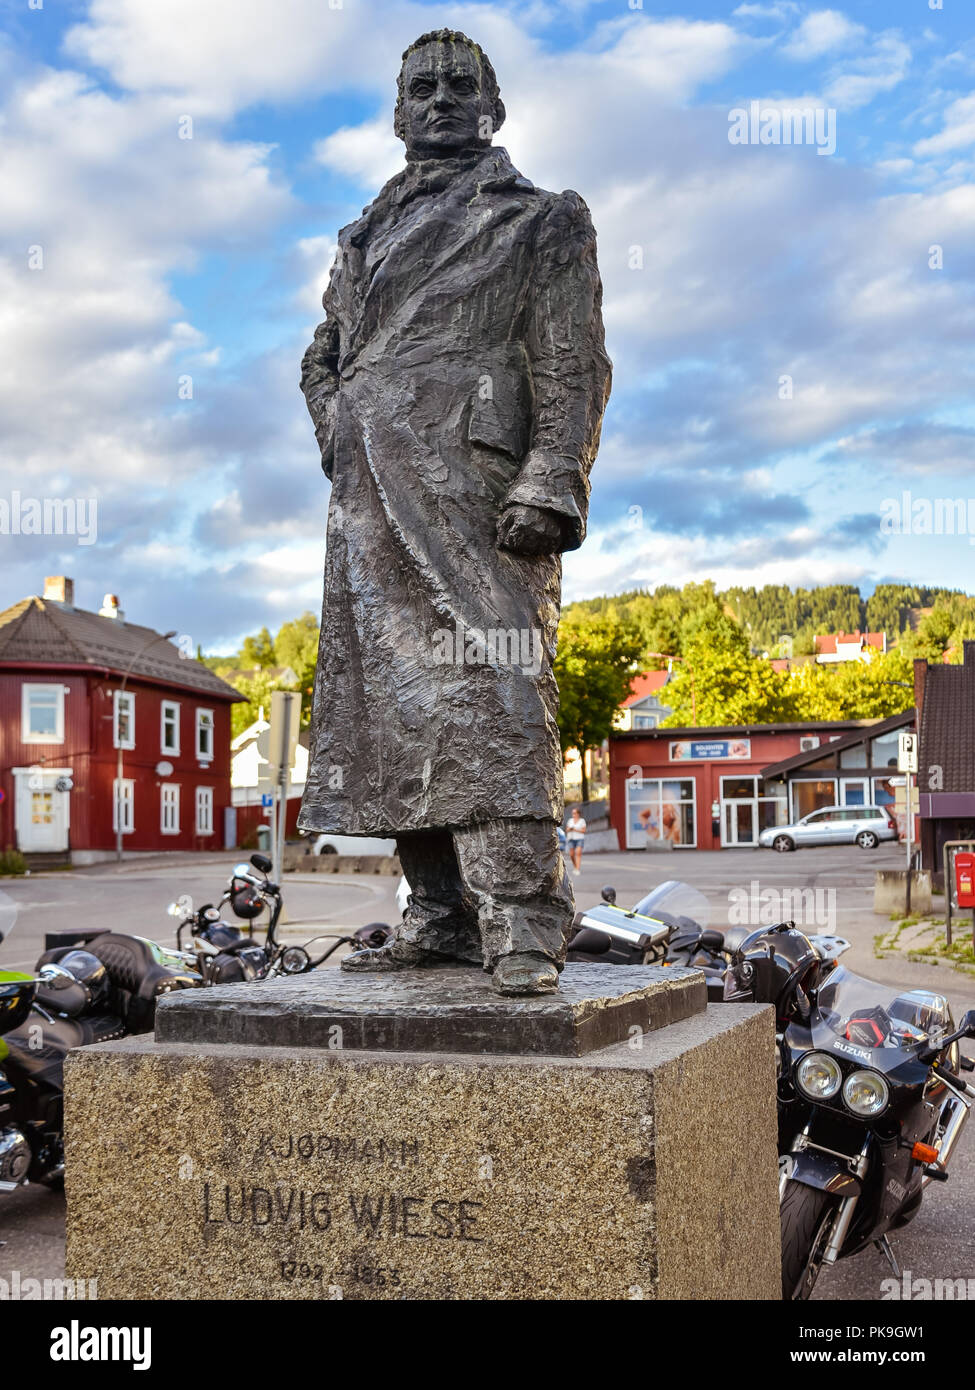 Lillehammer, Norway - Aug. 5, 2018: Statue of Ludvig Wiese (1792-1853), a Norwegian merchant and politician,and Lillehammer's first mayor. - Stock Image